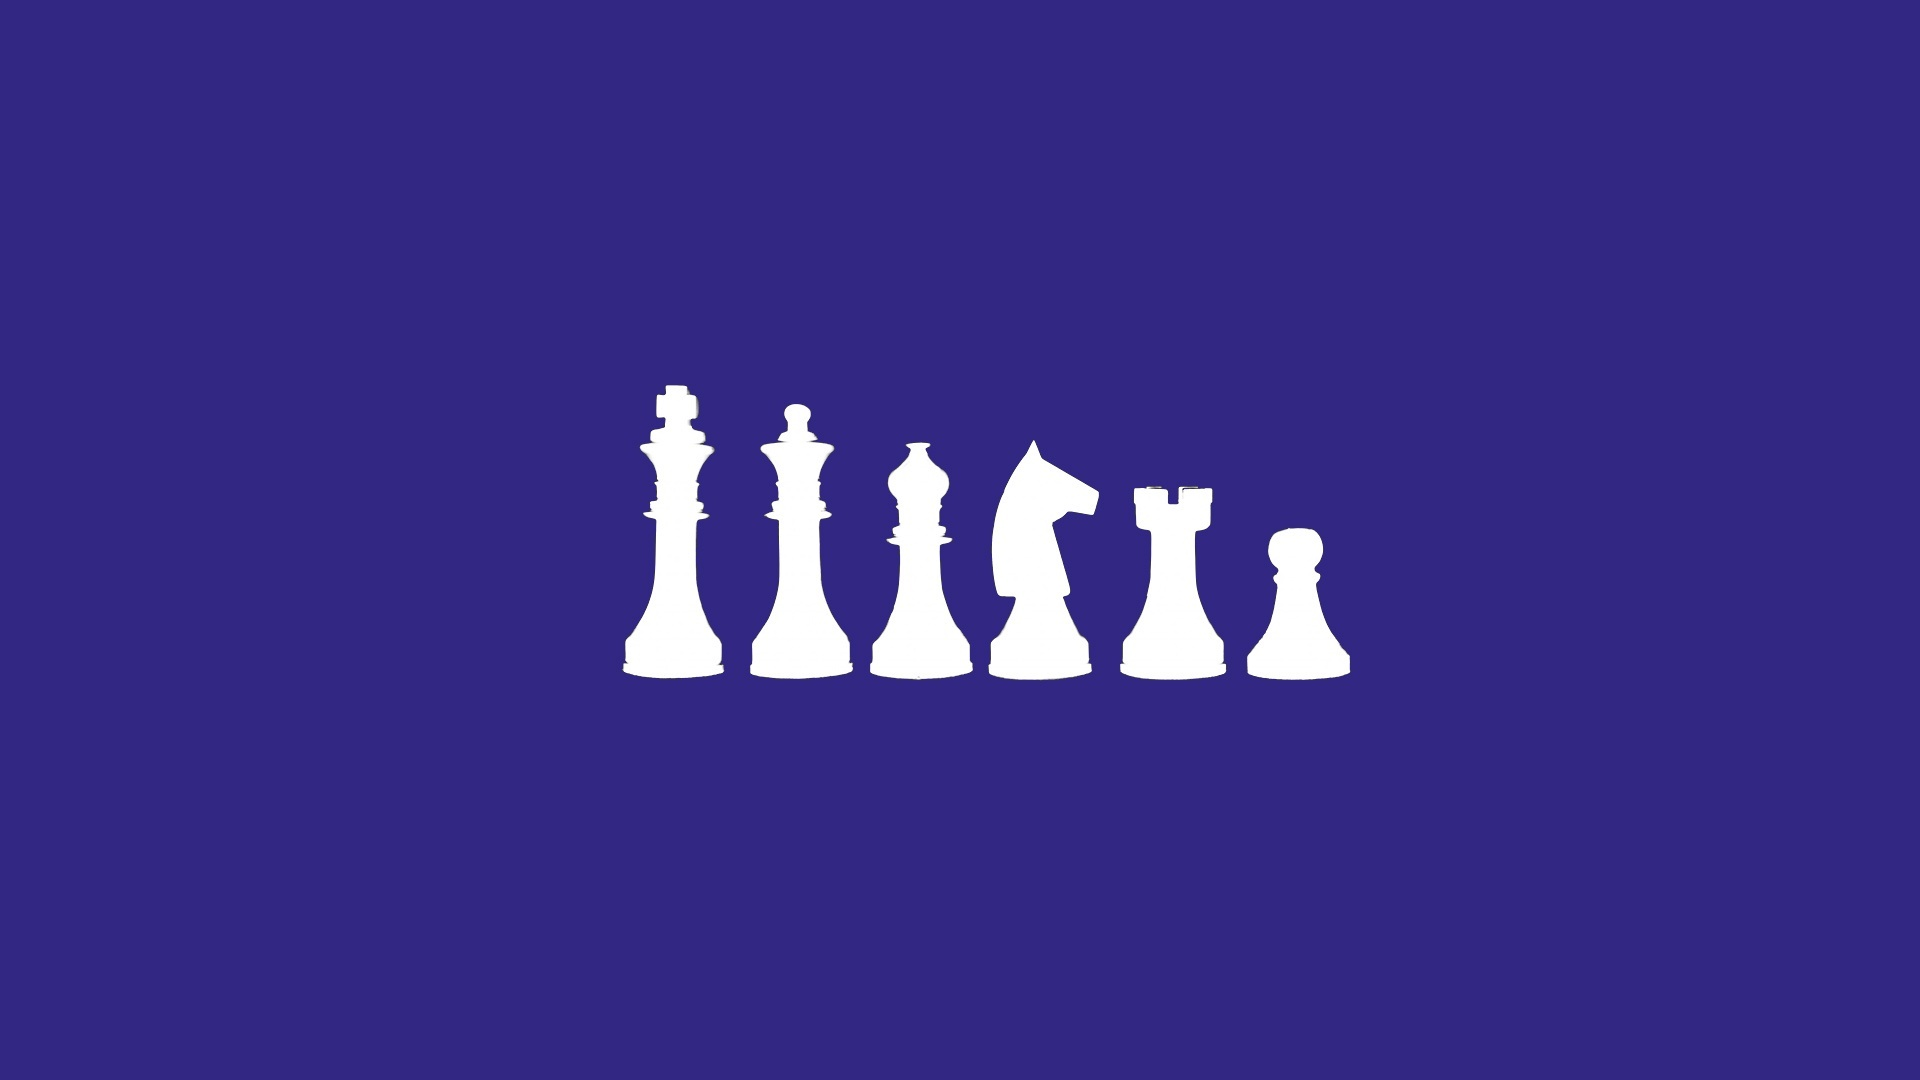 chess flash game